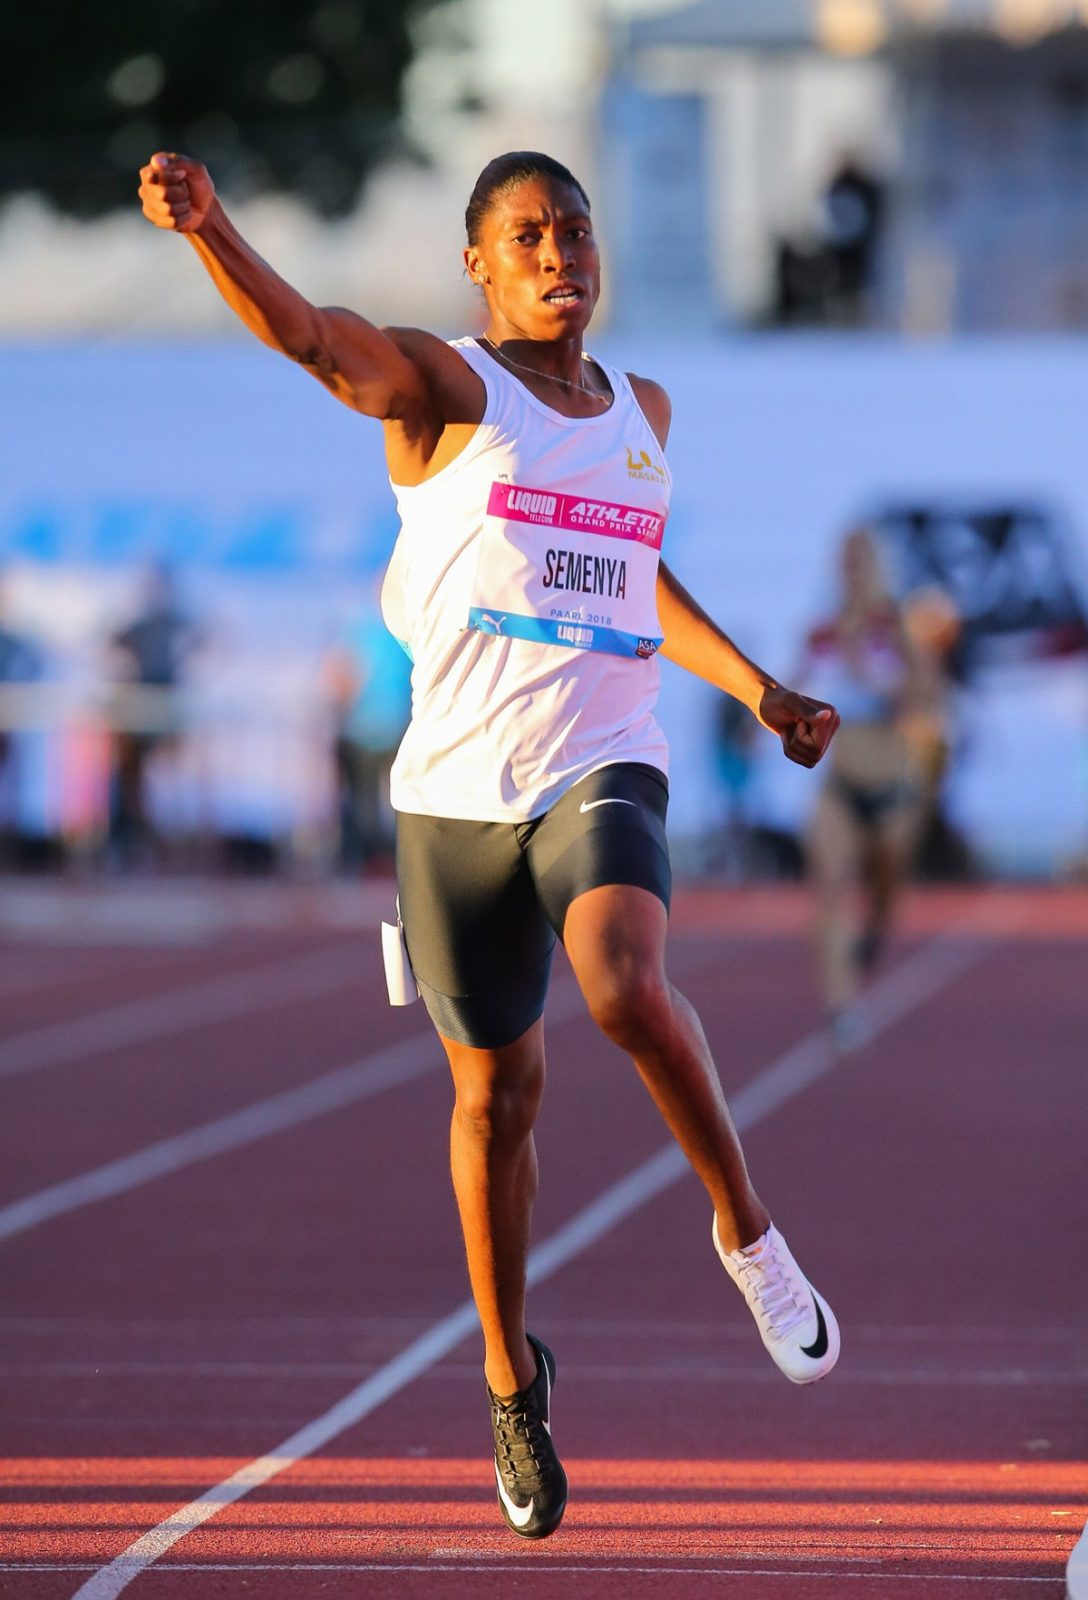 Caster Semenya in action at the Dal Josaphat Stadium in Paarl. Photo Credit: Roger Sedres